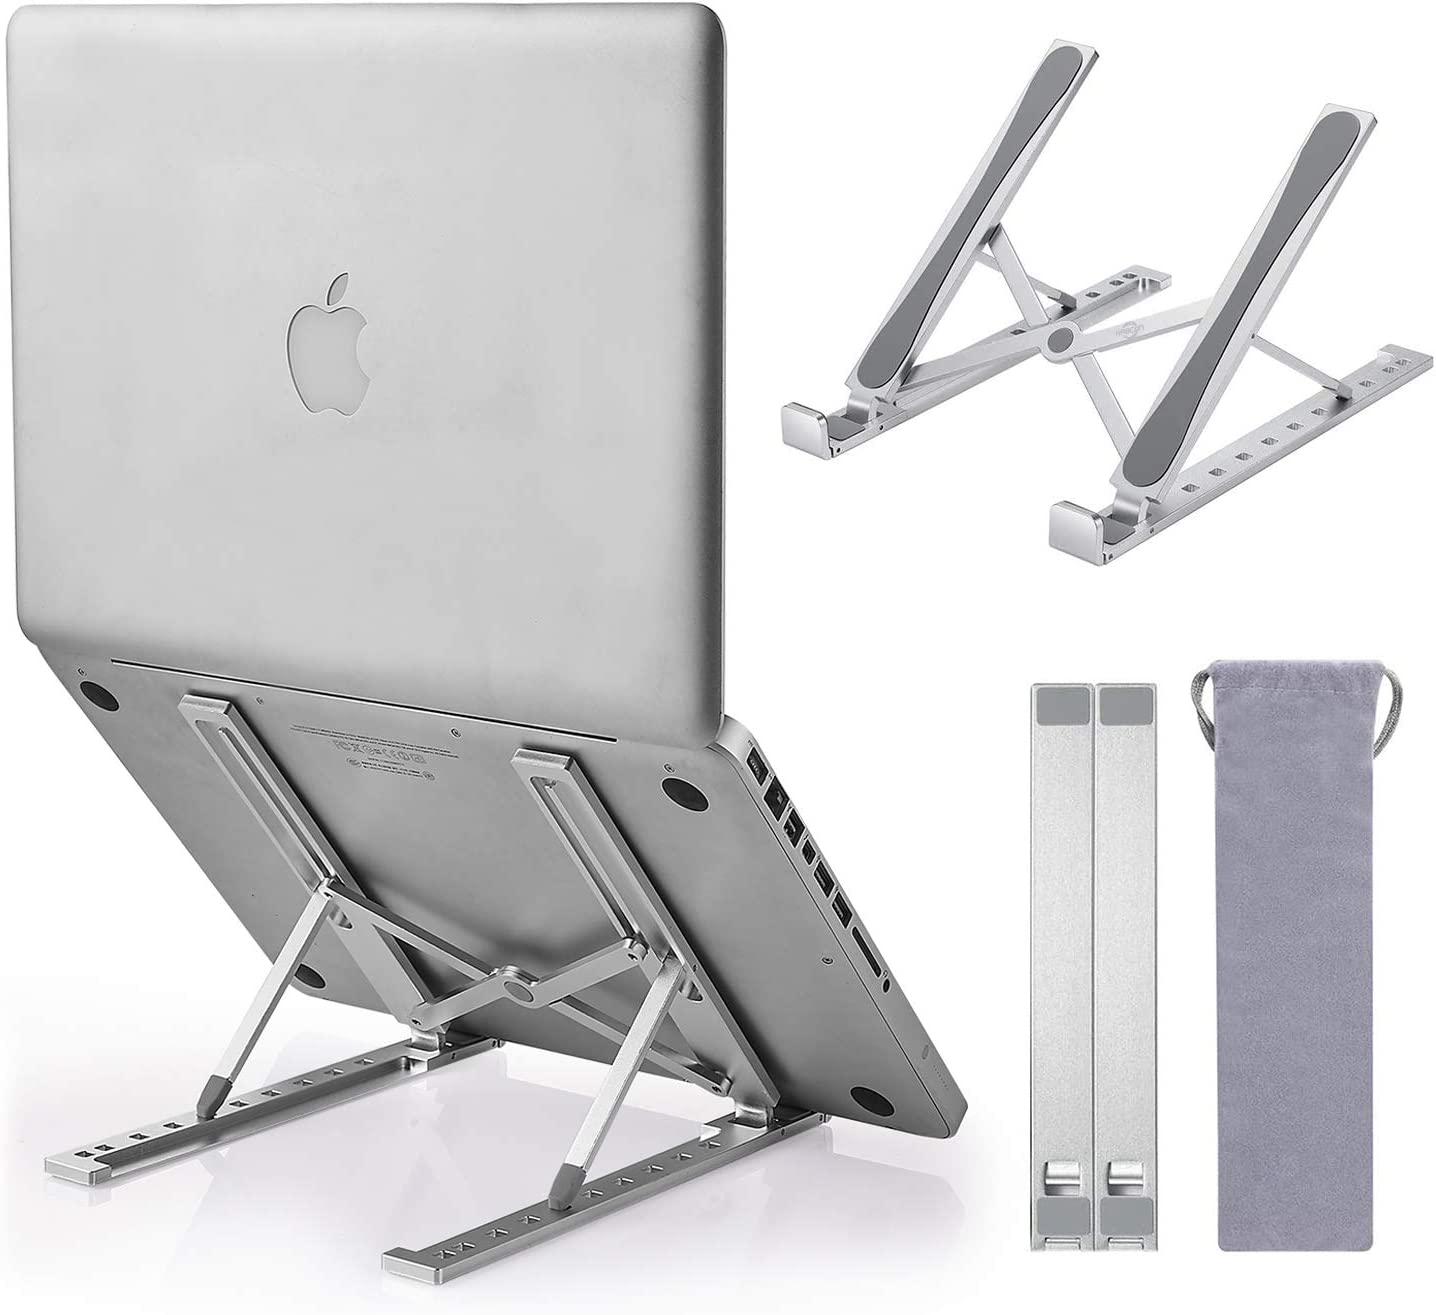 KABCON Quality Laptop Stand,Portable Foldabele Aluminum Adjustable Solid Desktop Tablet Holder Up to 15-in Laptops Stand for MacBook Air Pro,Dell XPS, HP,Lenovo,ASUS Transformer, Etc.with a Carry Bag